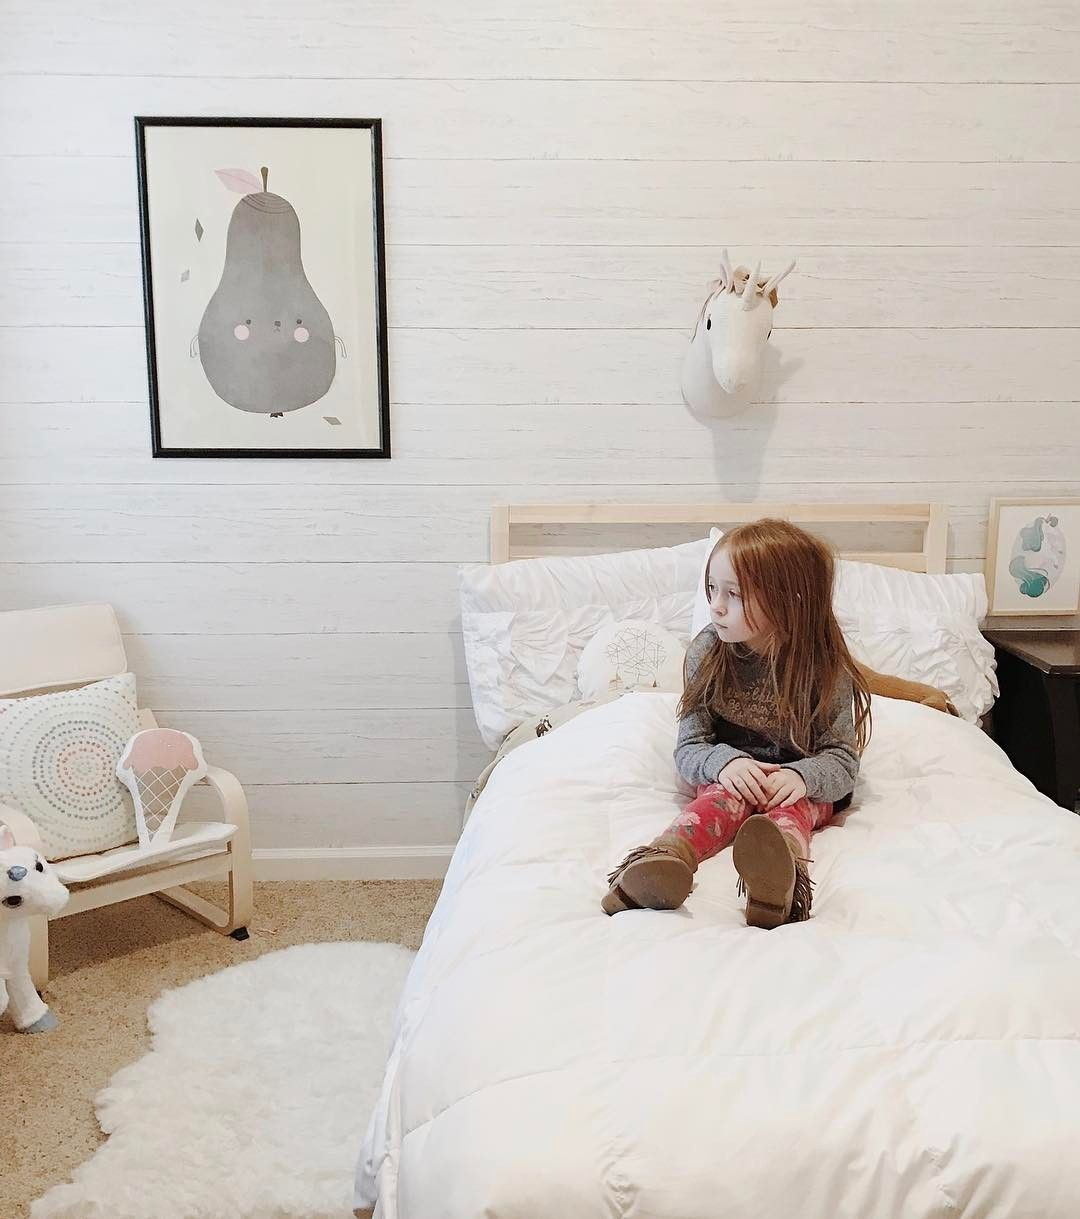 Shiplap Peel And Stick Temporary Wallpaper In A Little Girls Room Unicorn Bust From Target Little Girl Rooms Temporary Wallpaper Room